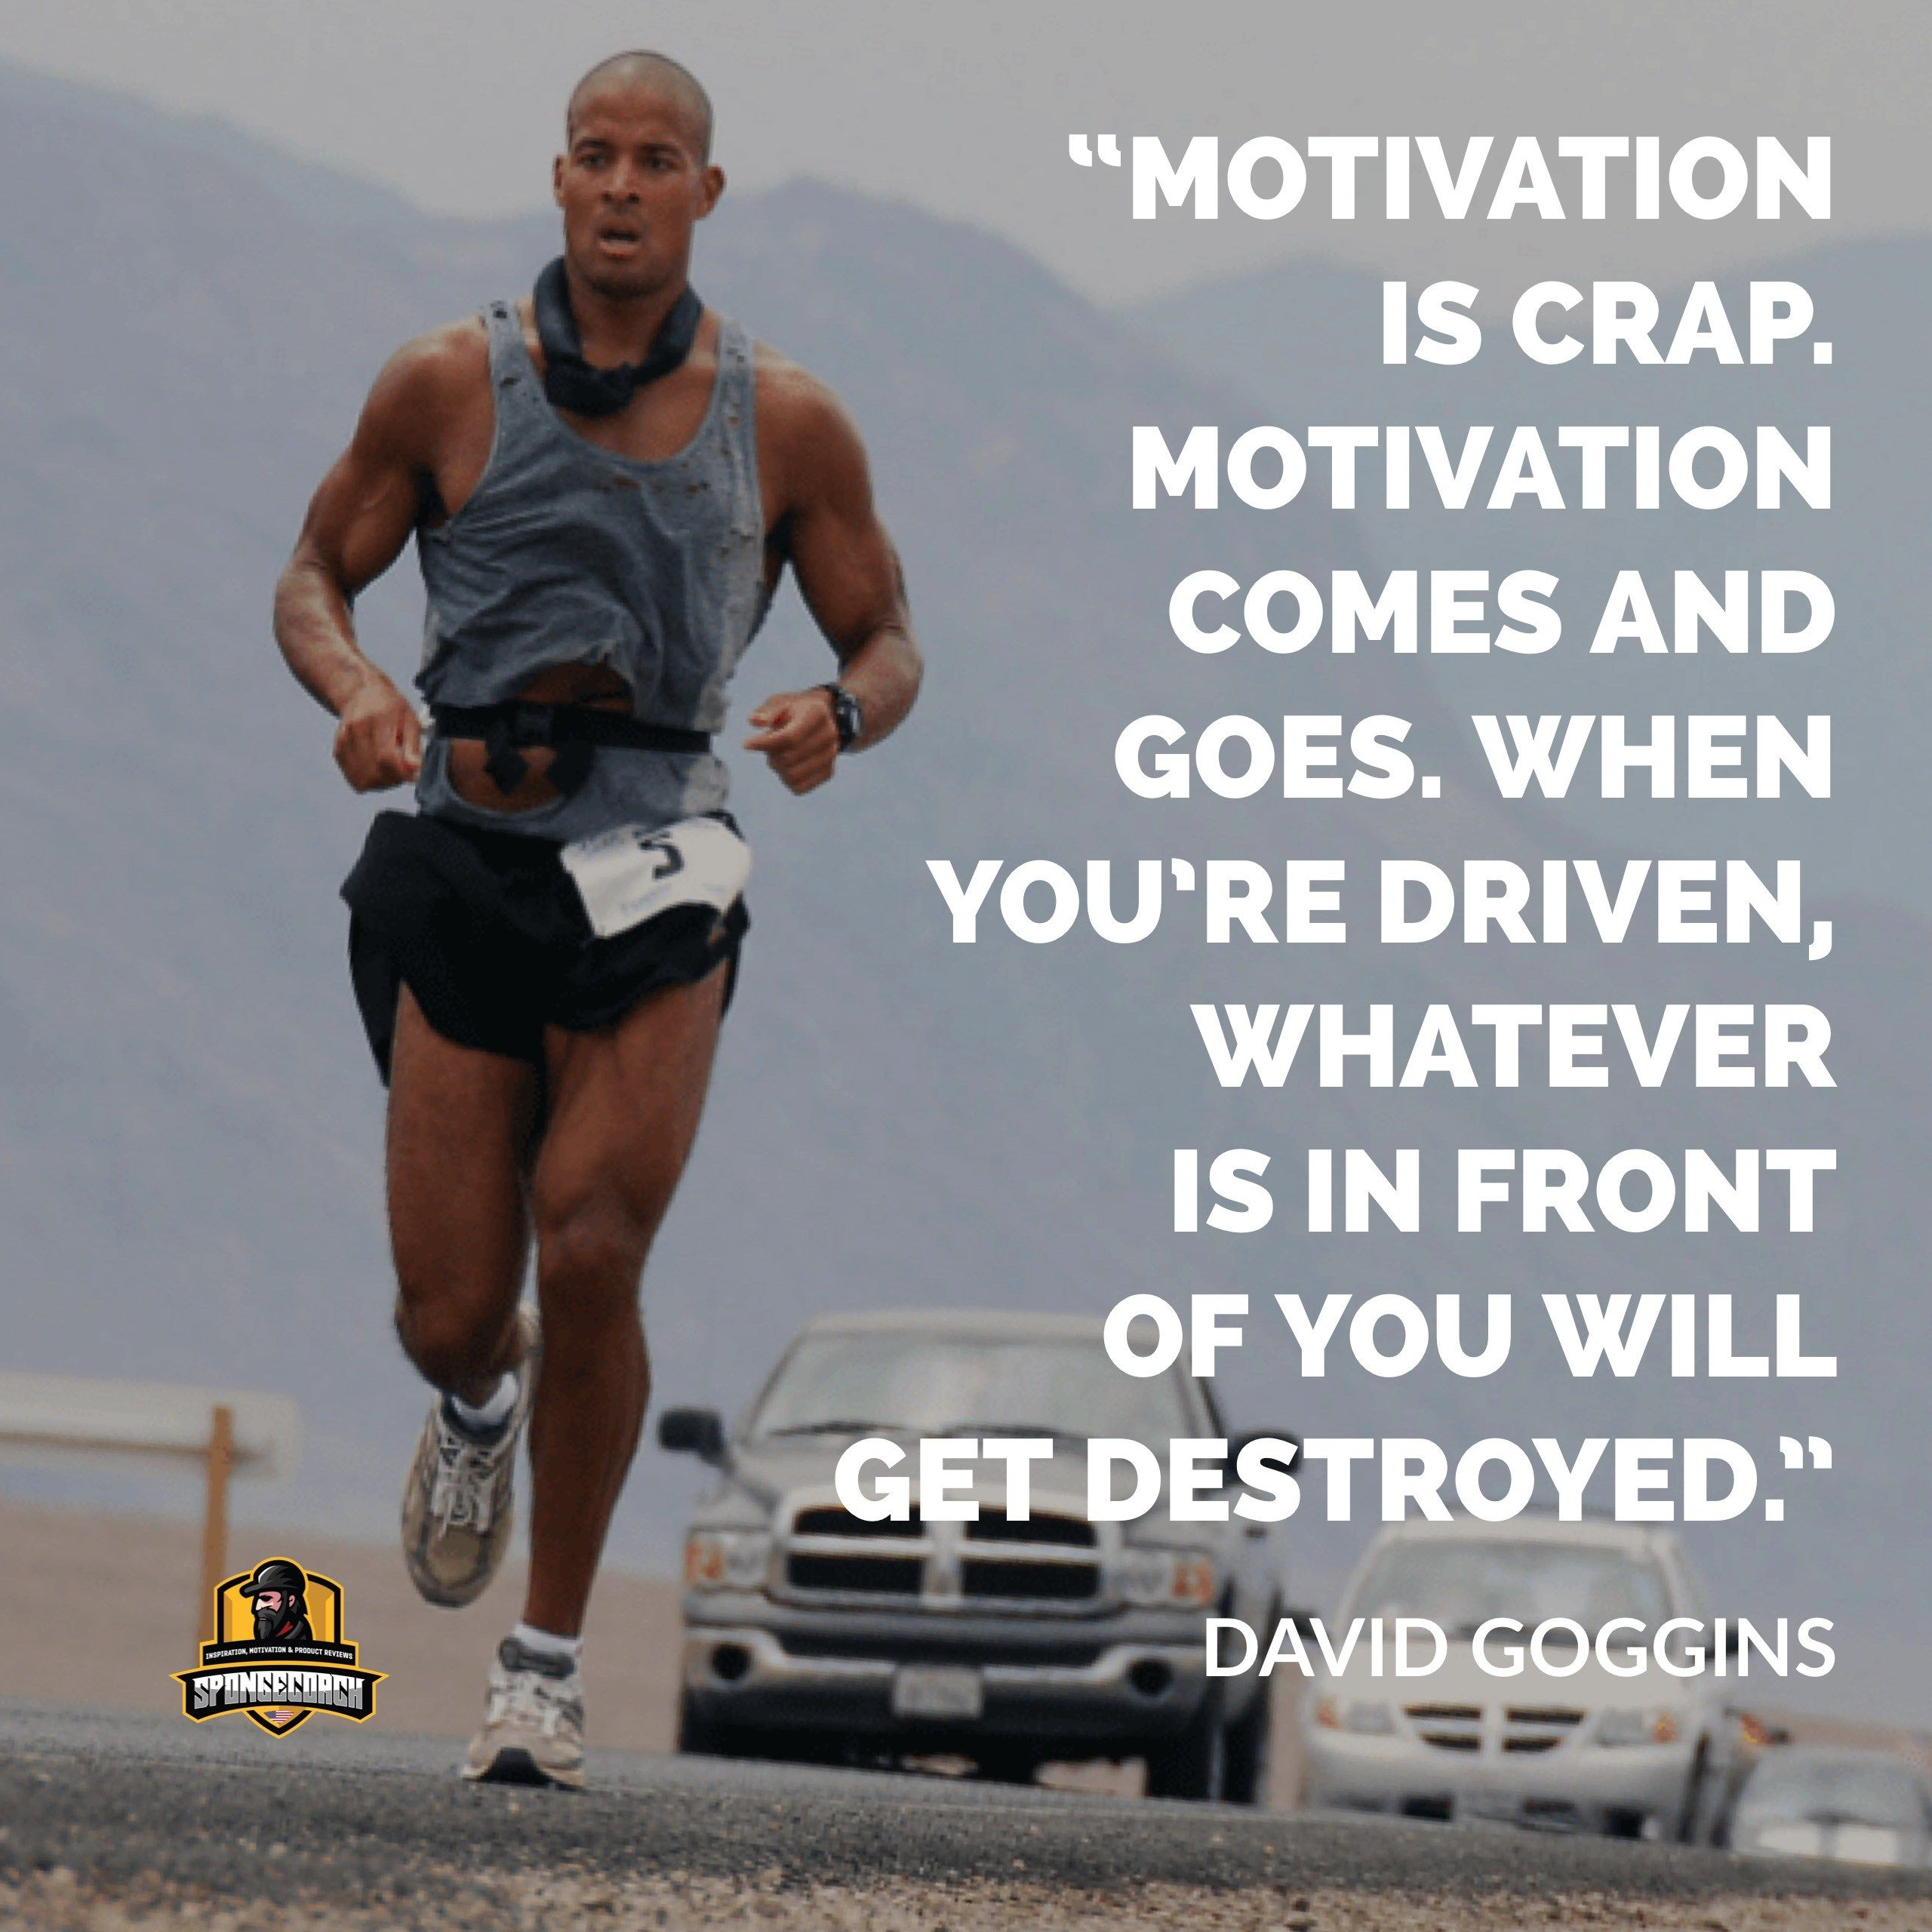 Best David Goggins Quotes On Self Talk And Visualization Self Motivation Quotes Driving Quotes Self Quotes